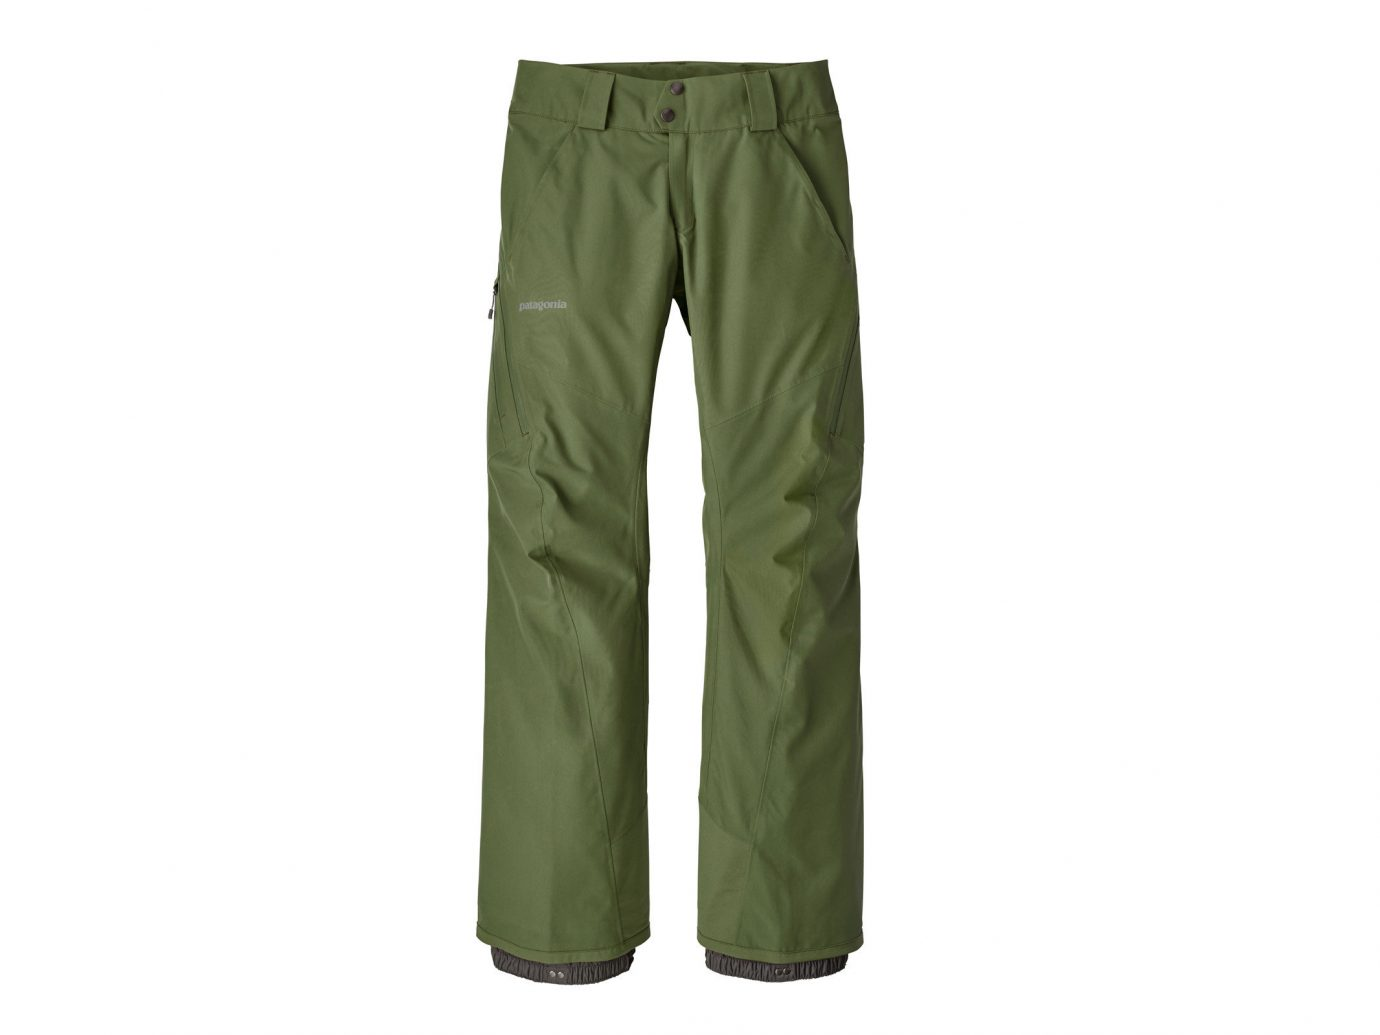 Mountains + Skiing Style + Design Travel Shop clothing trouser active pants green trousers cargo pants waist rain pants